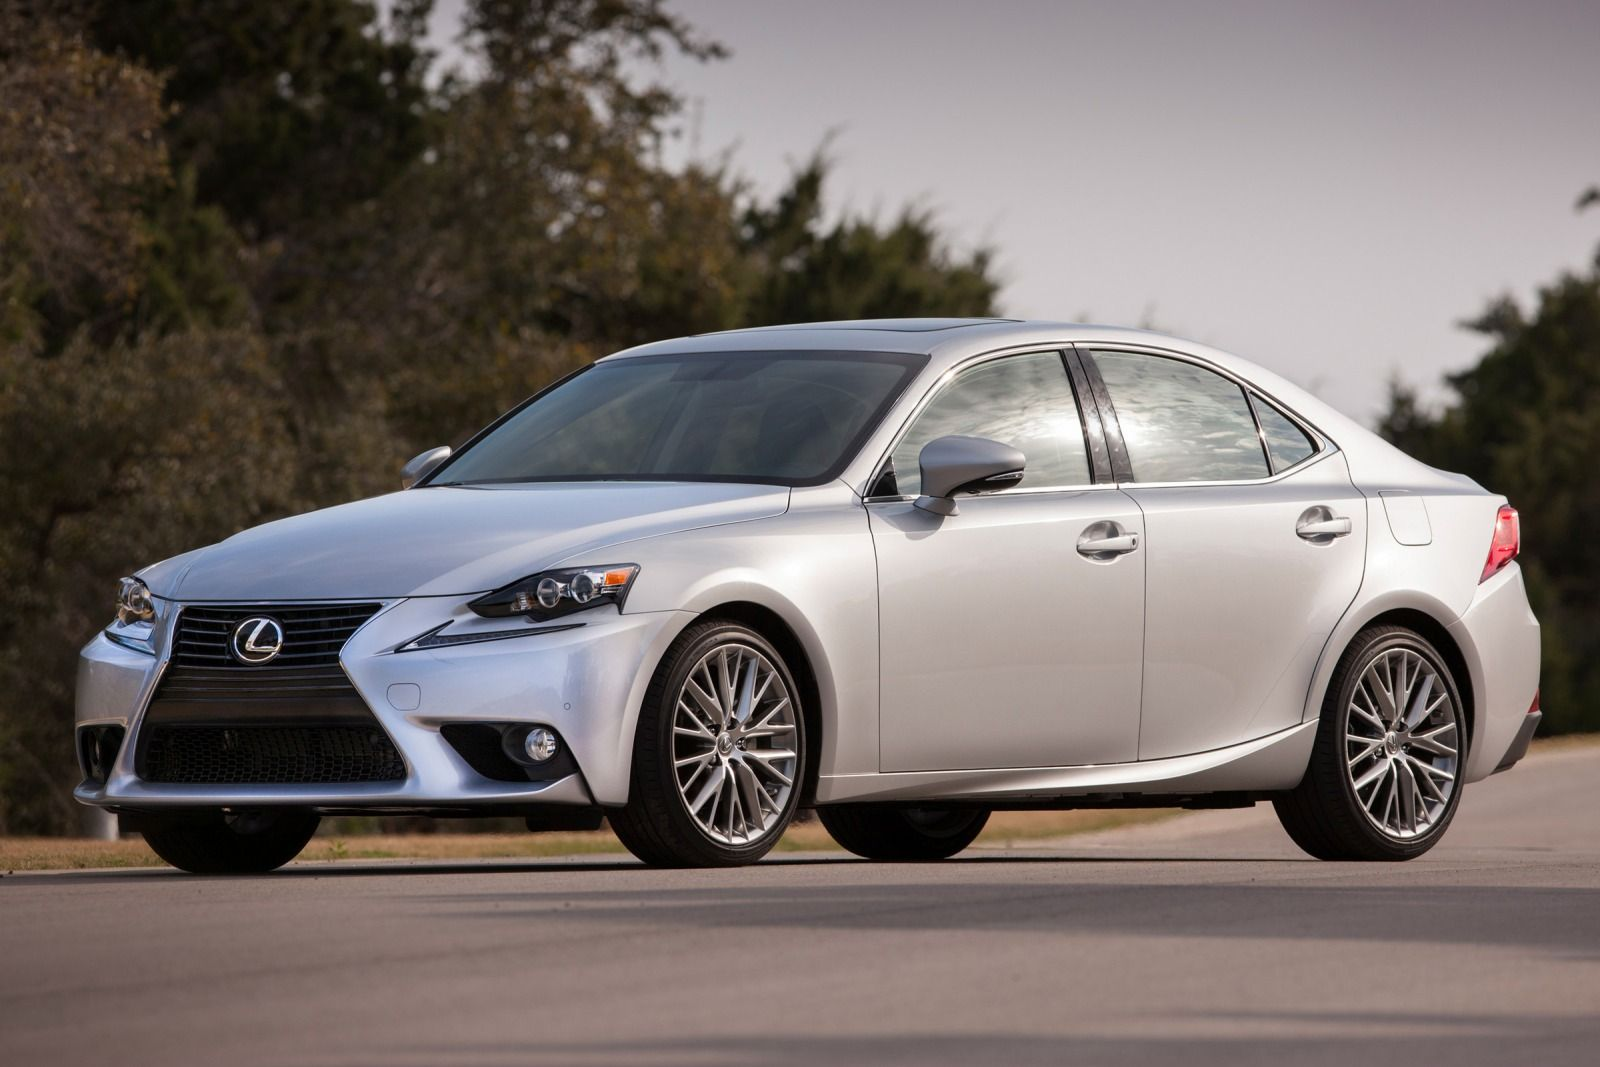 2015 Lexus IS 250 #5